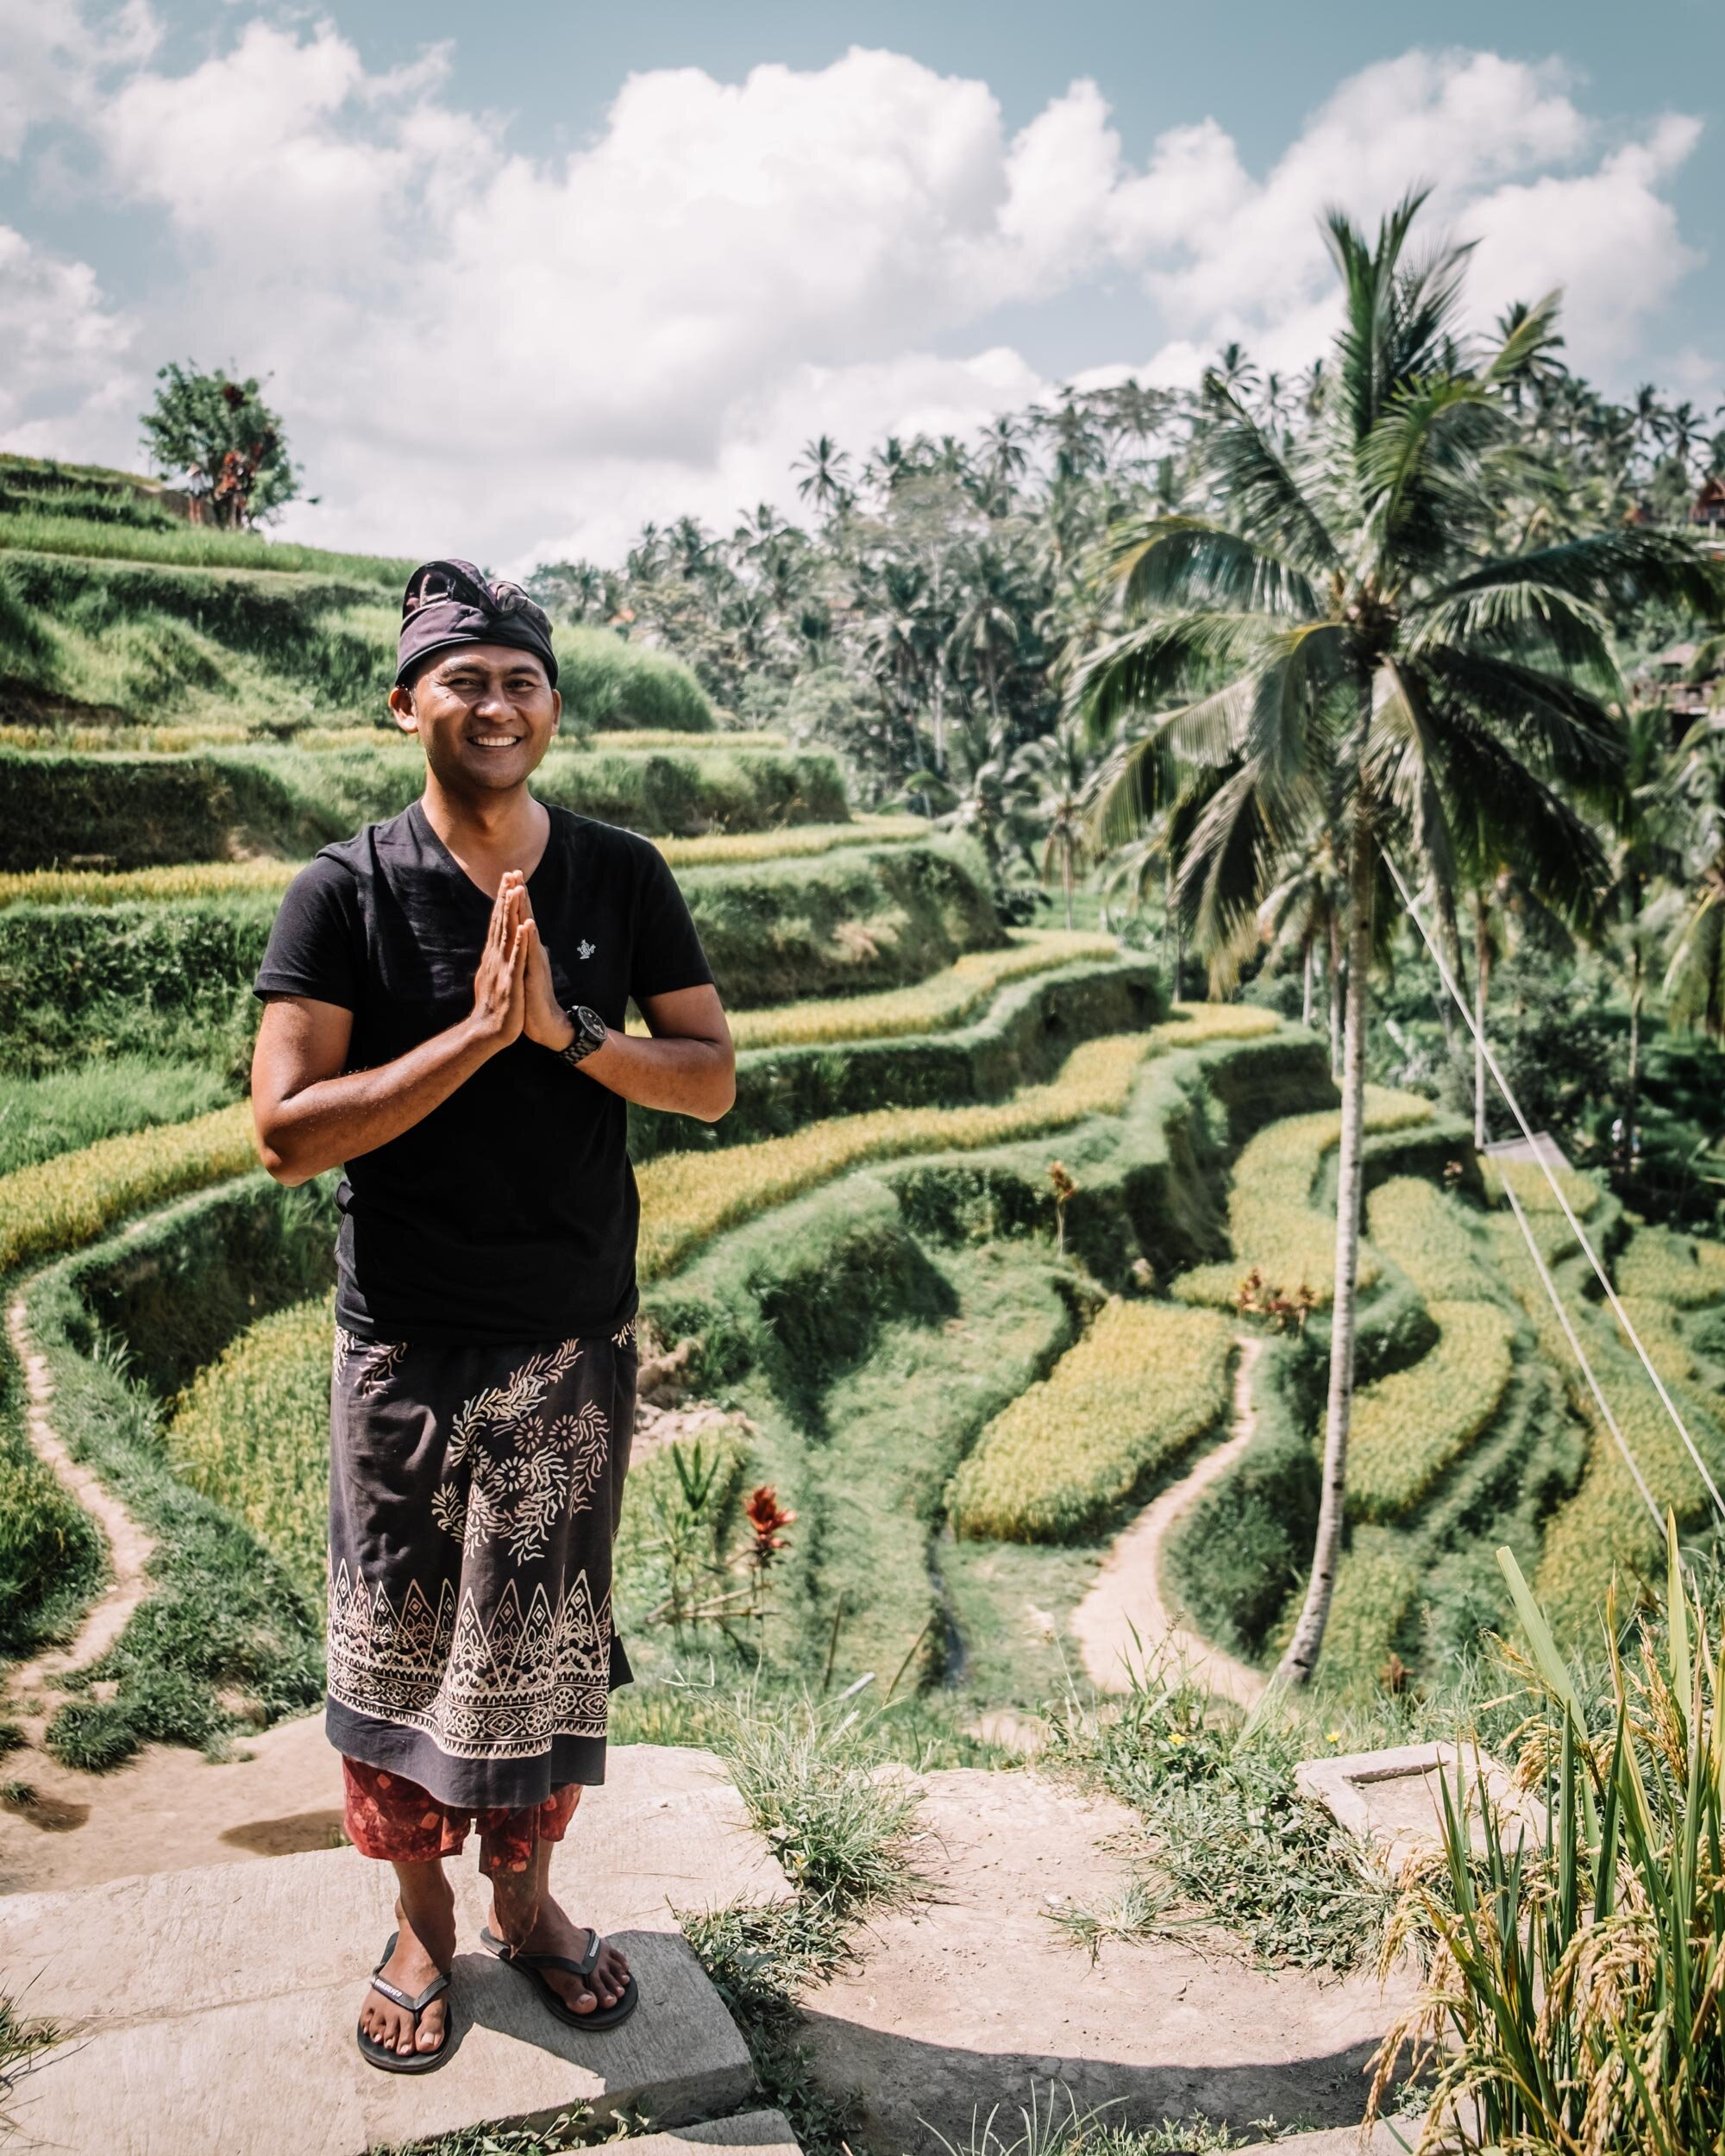 Rachel Off Duty: Local Balinese Man in Rice Terraces in Bali